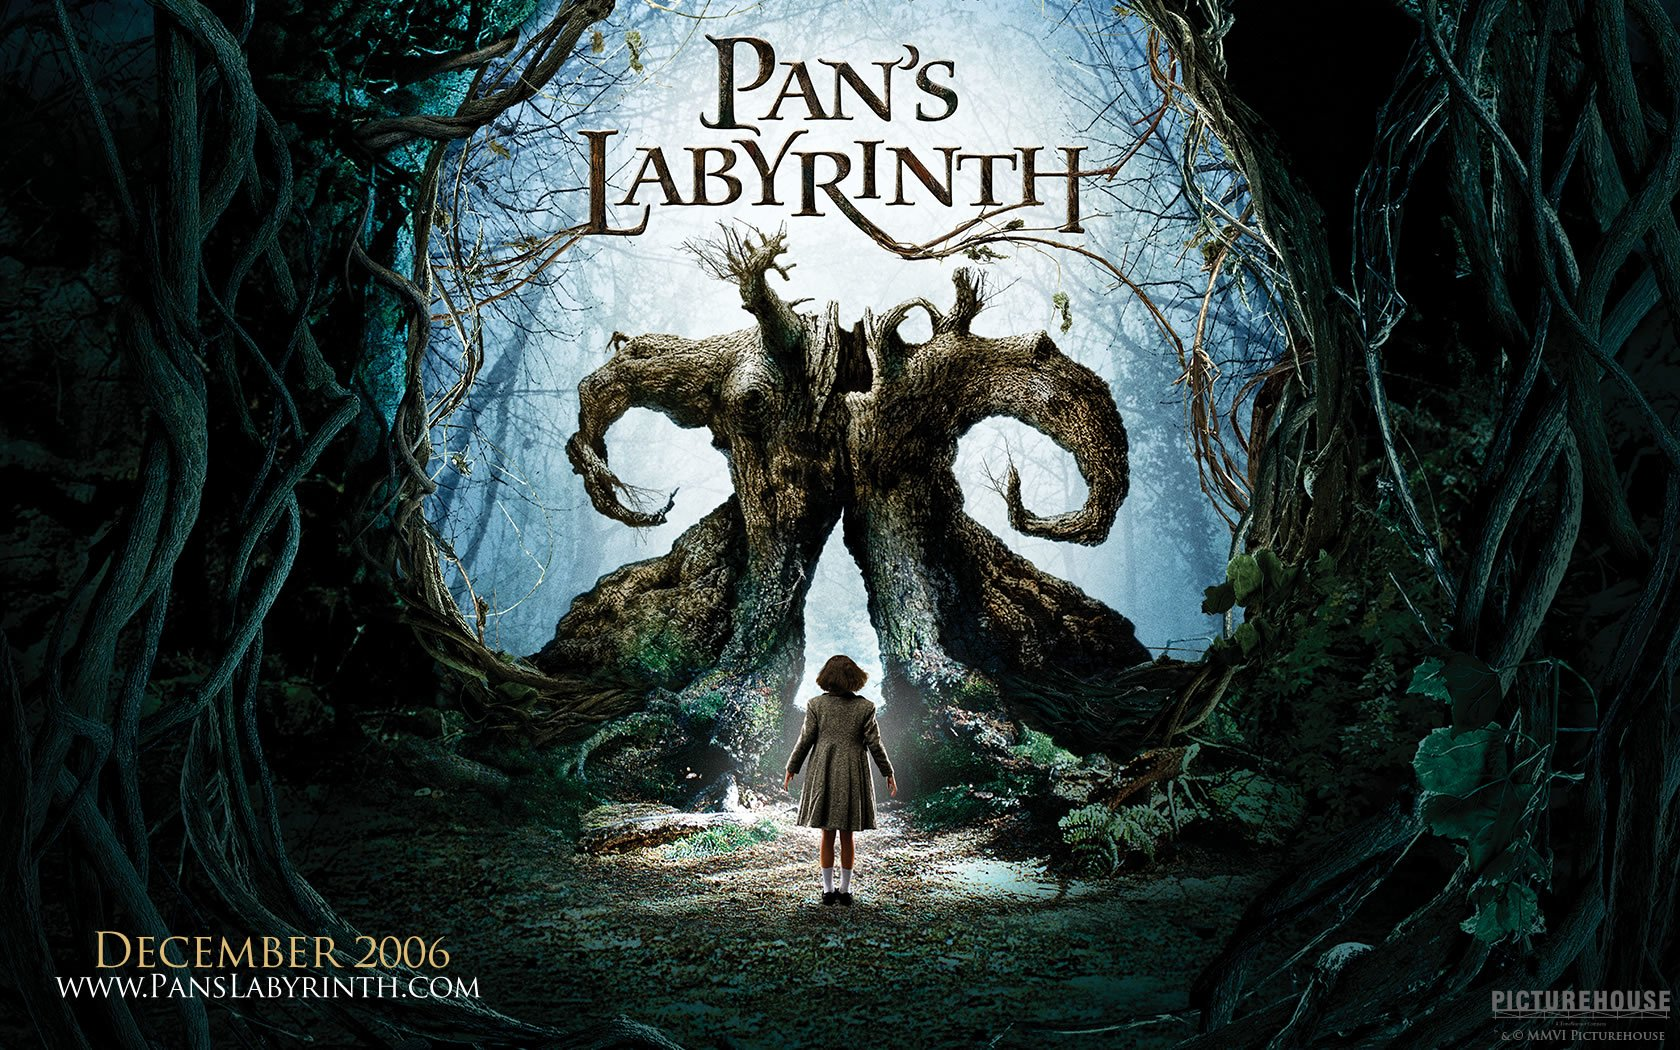 Pan's Labyrinth - 15 Underrated Movies on Netflix